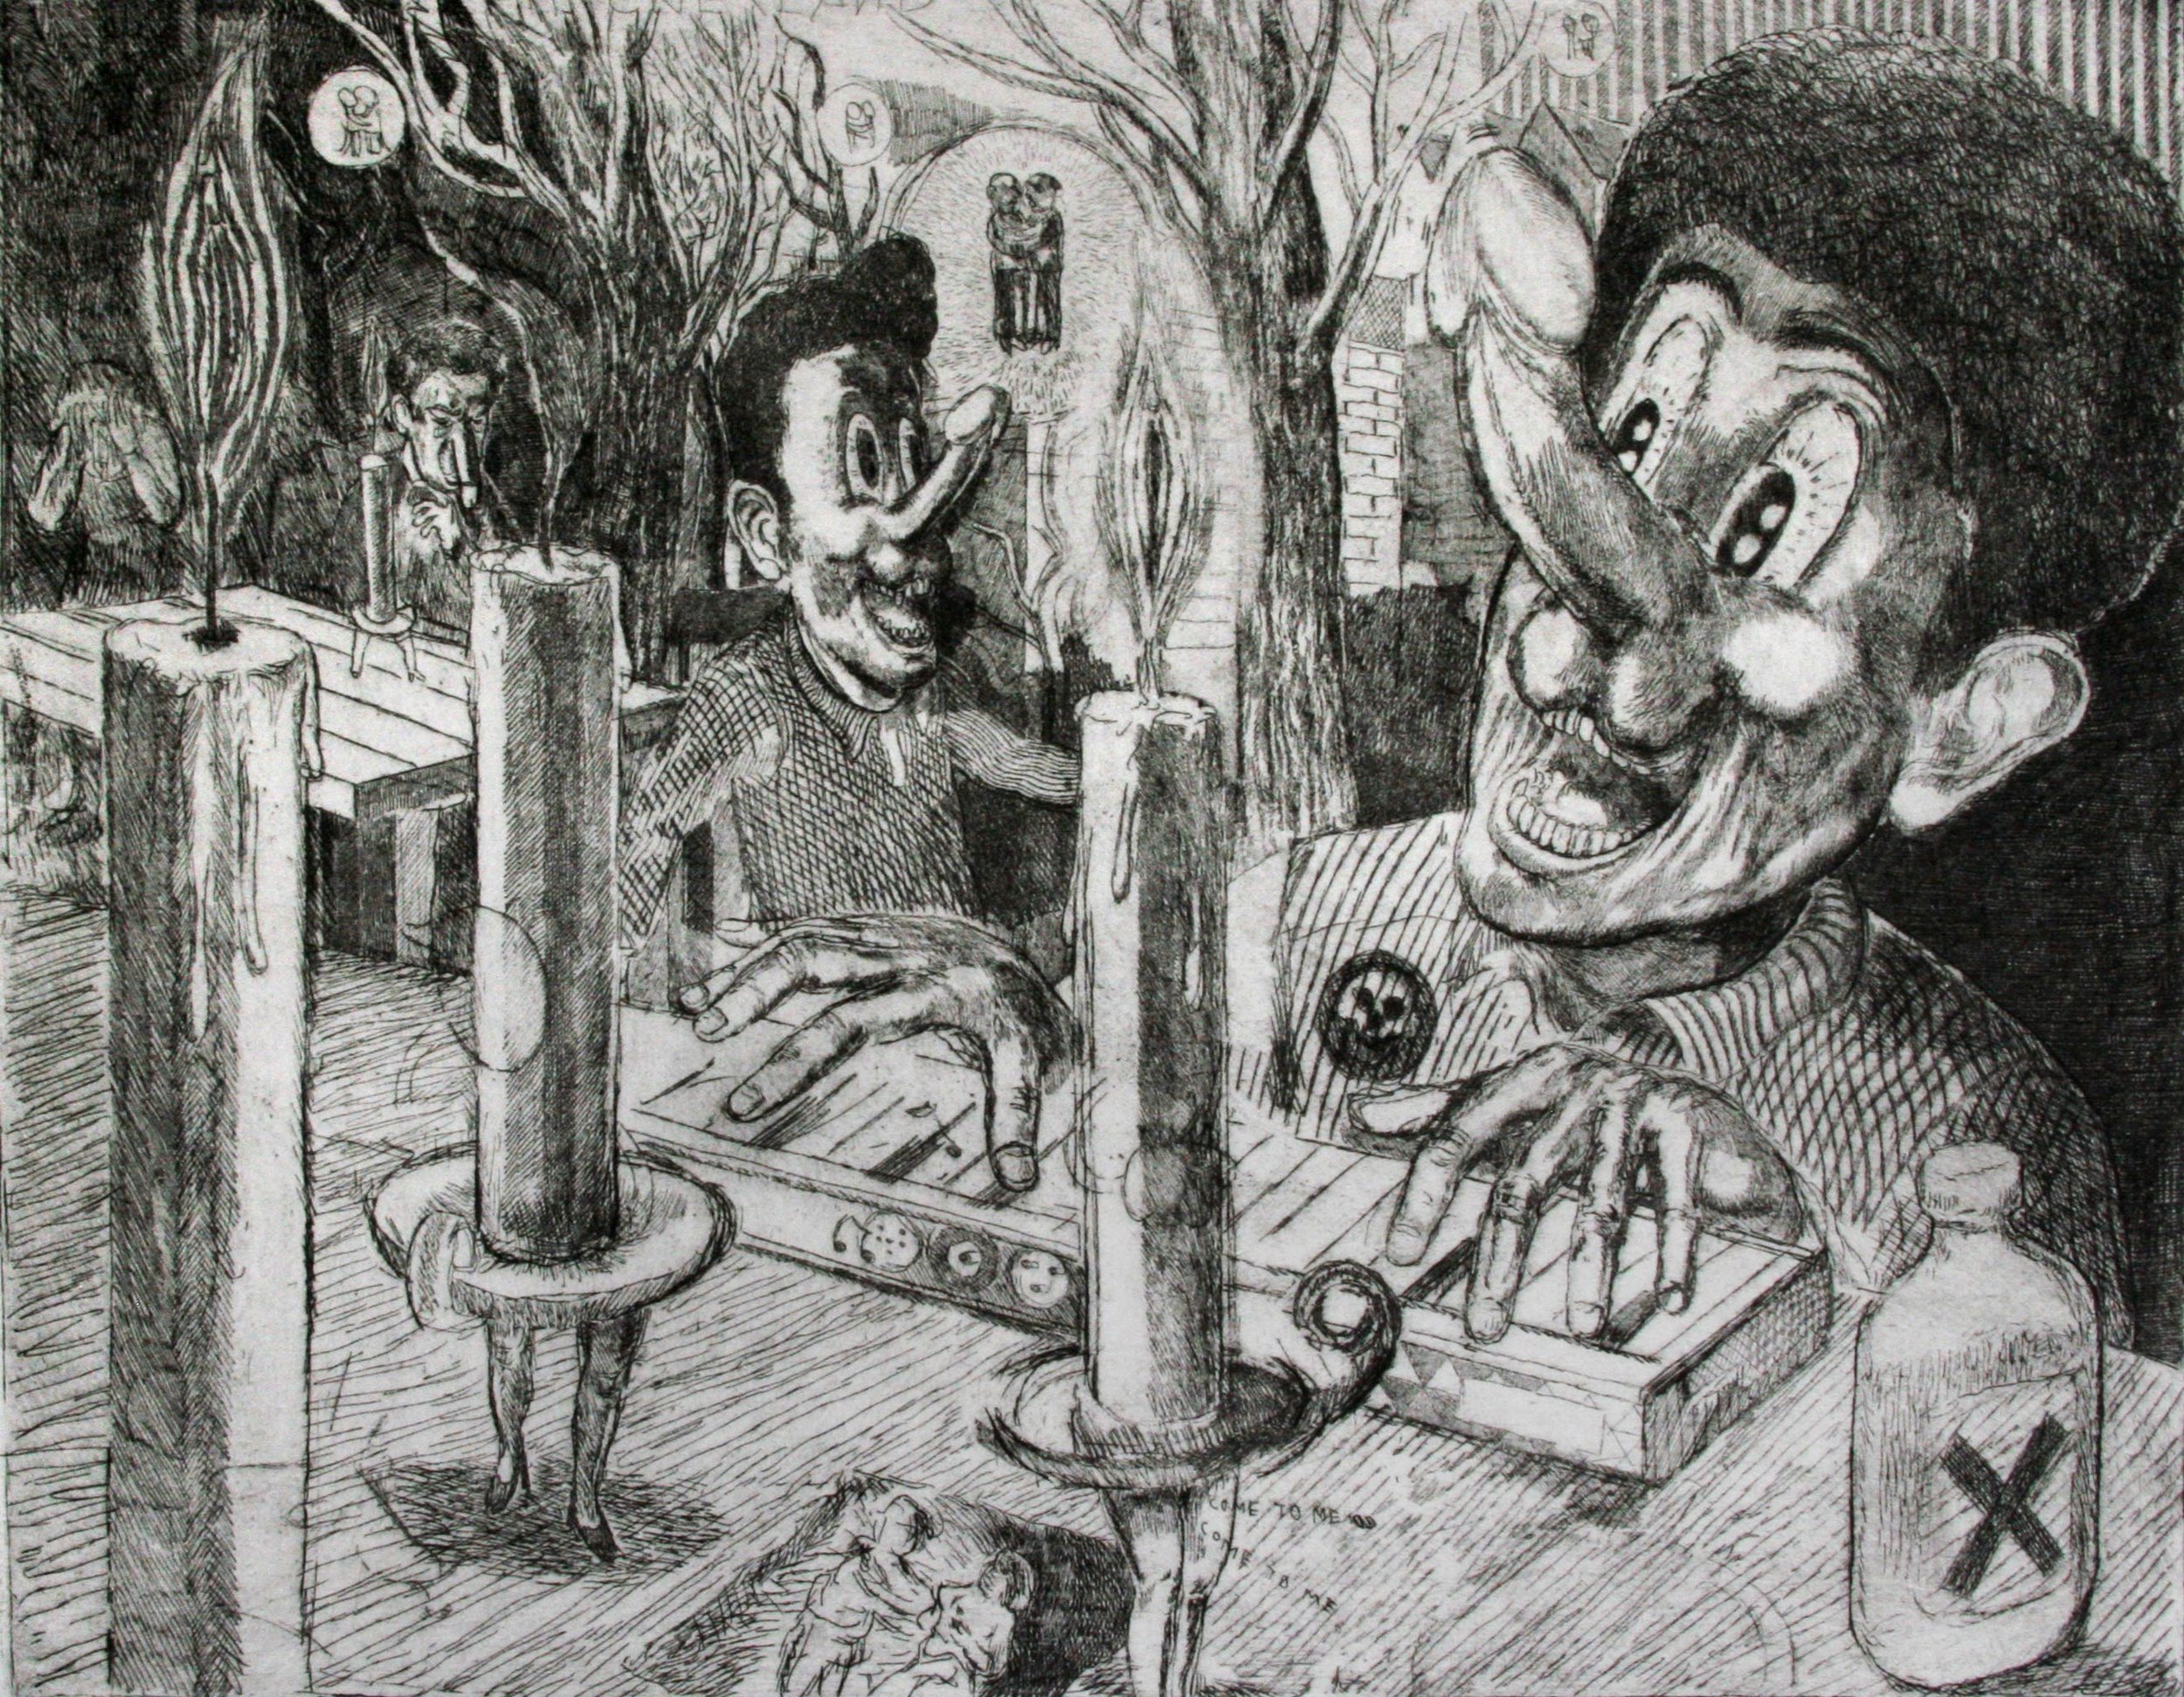 'Mr Dicky and the Candle Ladies' 2012   Engraving and etching on paper. 29 x 39 cm